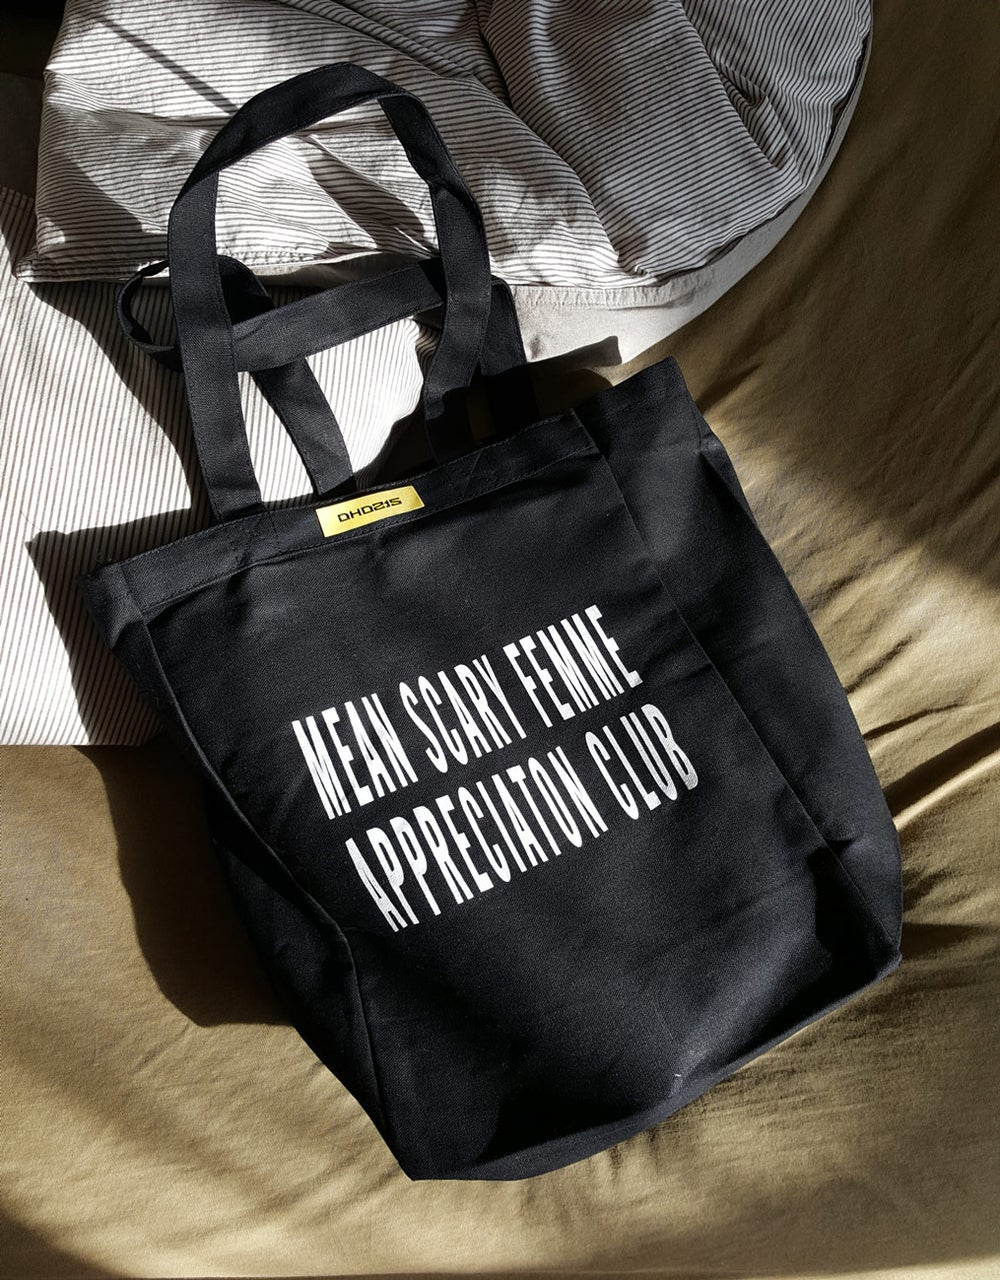 APPRECIATION CLUB TOTE